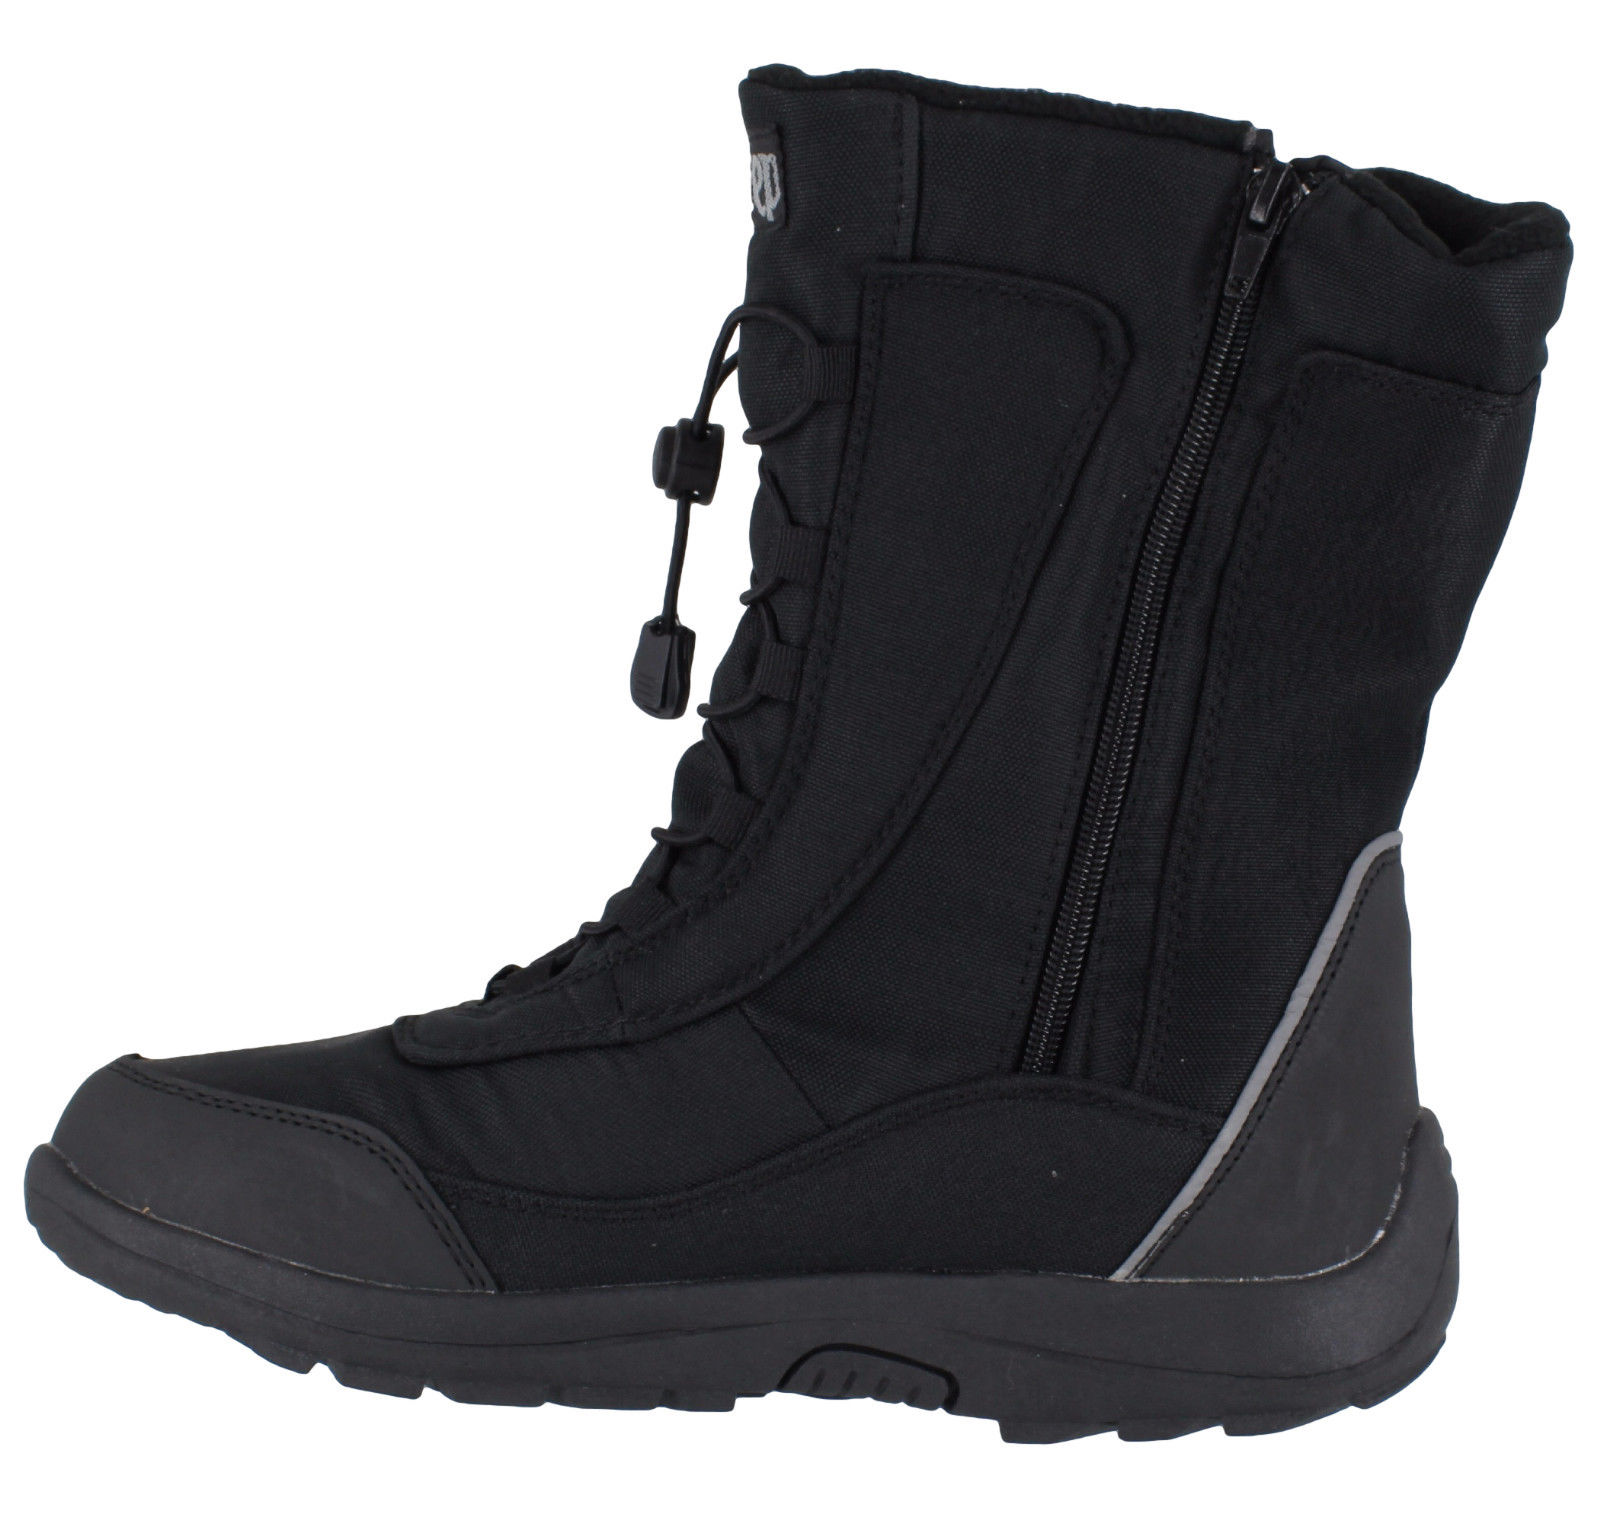 Freestep Womens Snow Winter Fully Water-Resistant Black